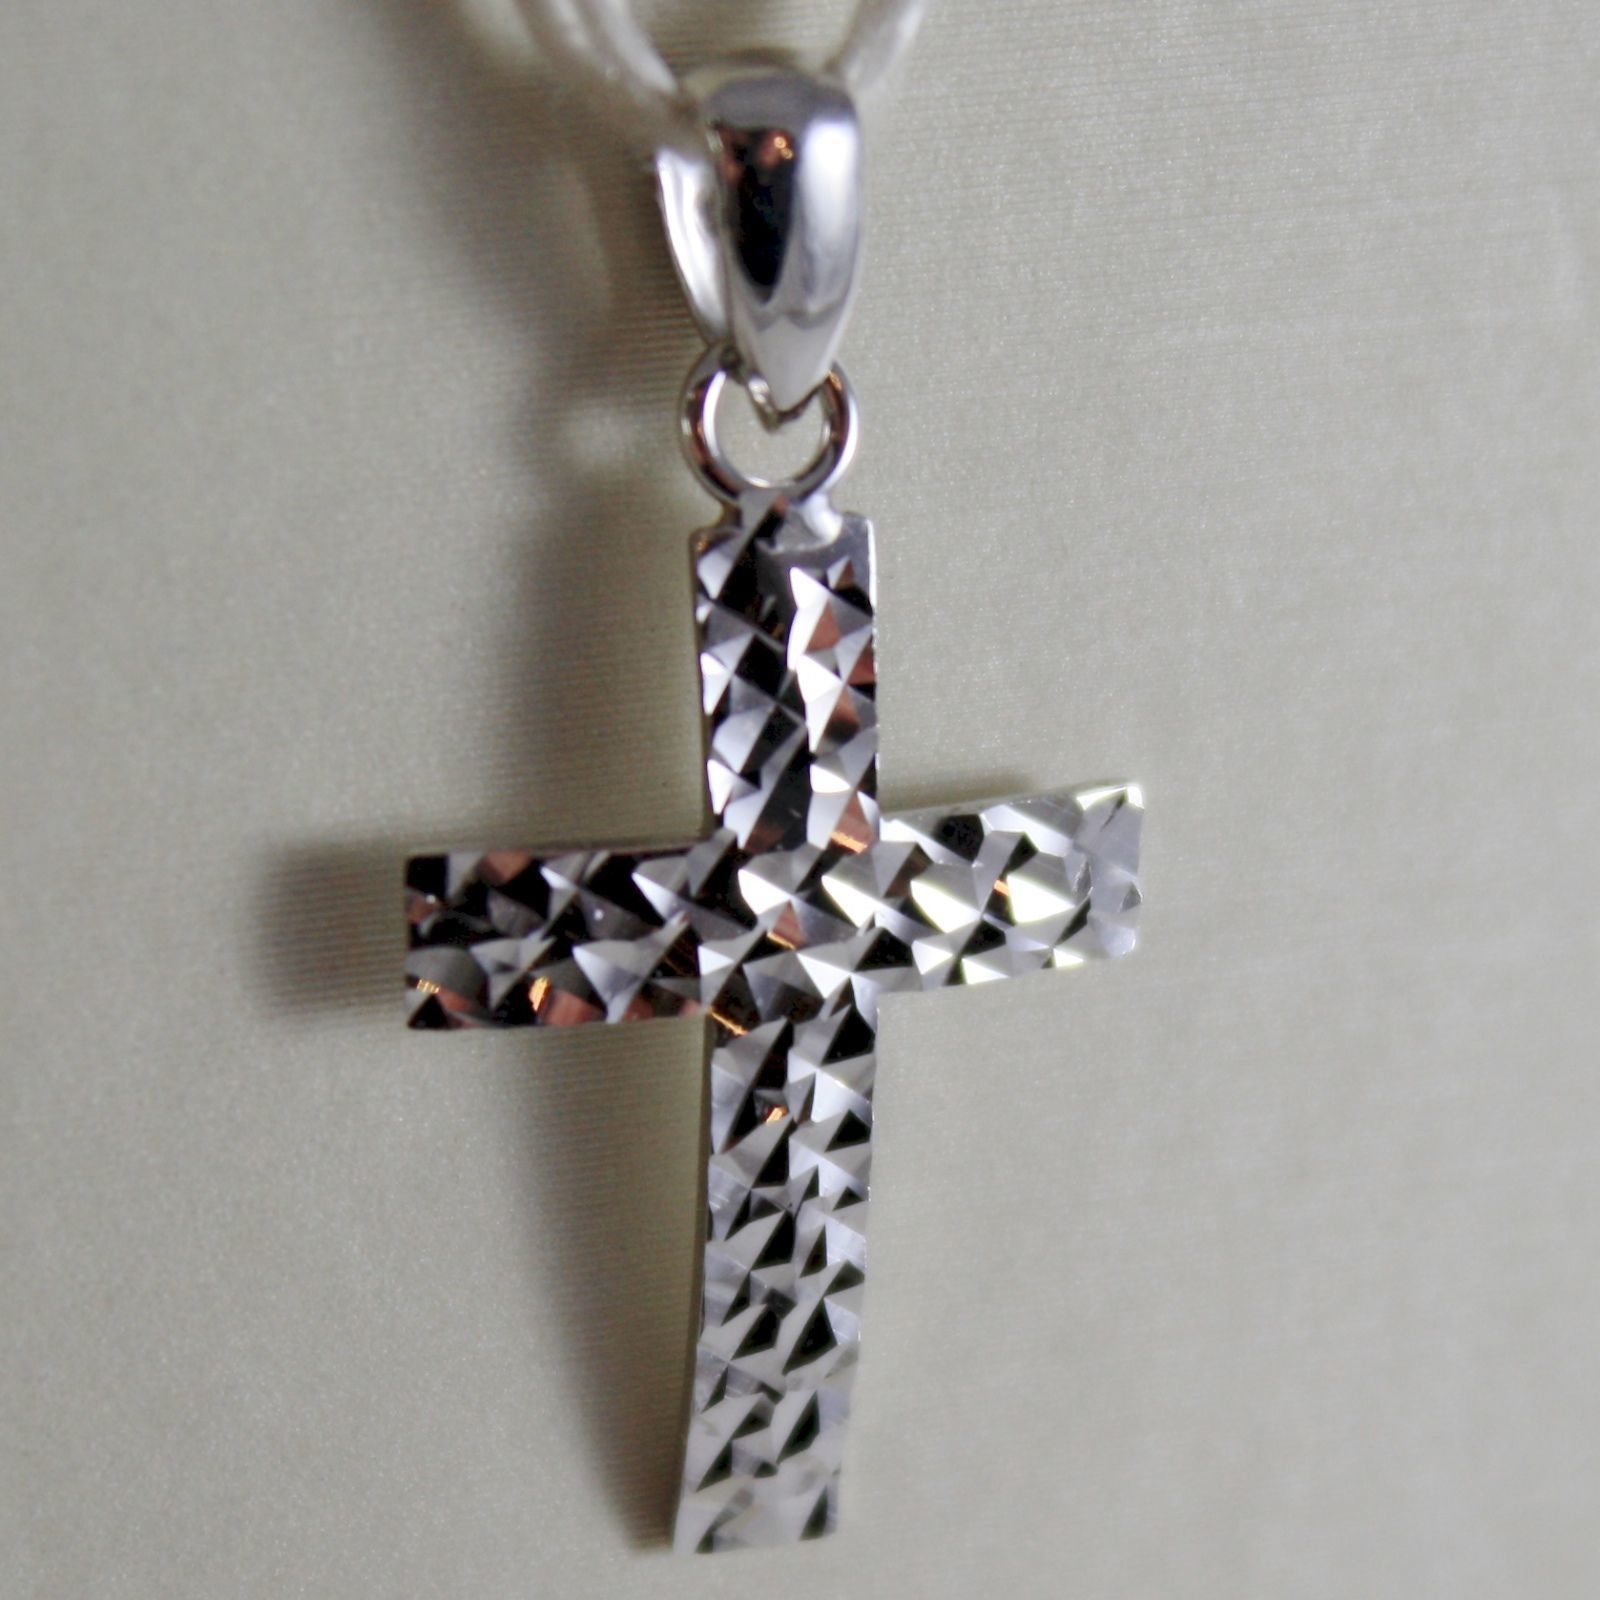 18K WHITE GOLD CROSS, PENDANT, STYLIZED, HAMMERED, ARCHED, MADE IN ITALY